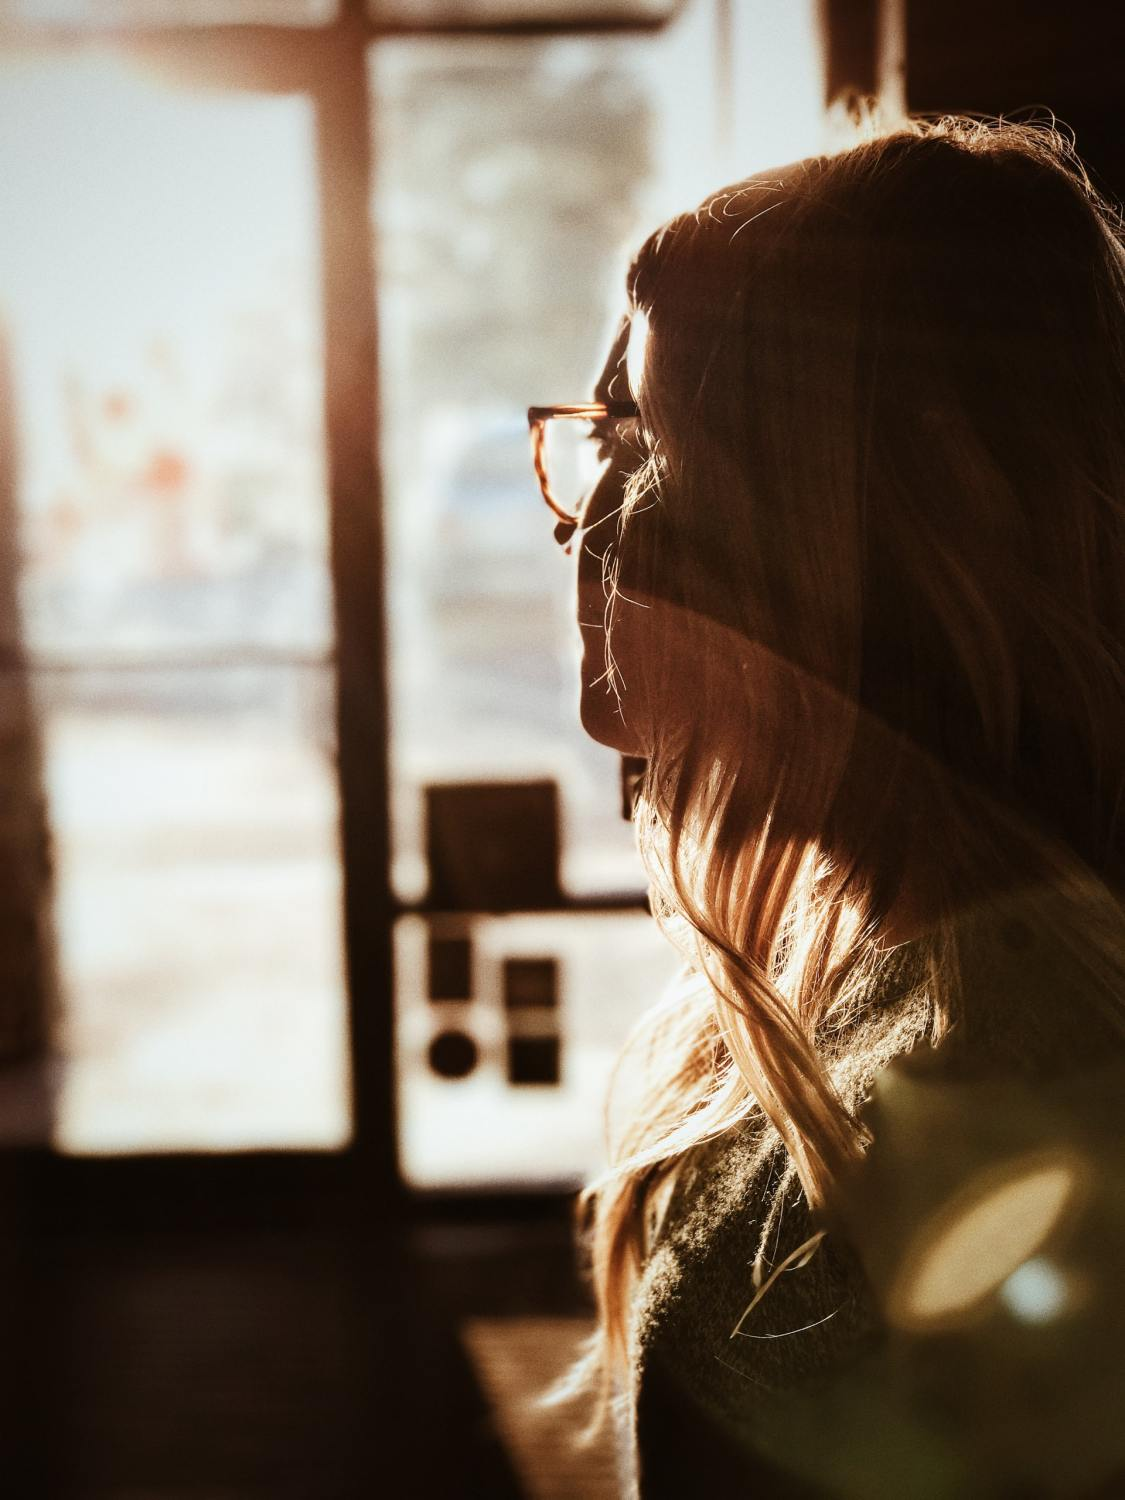 The Biggest Relationship Regrets: All Easily Avoidable